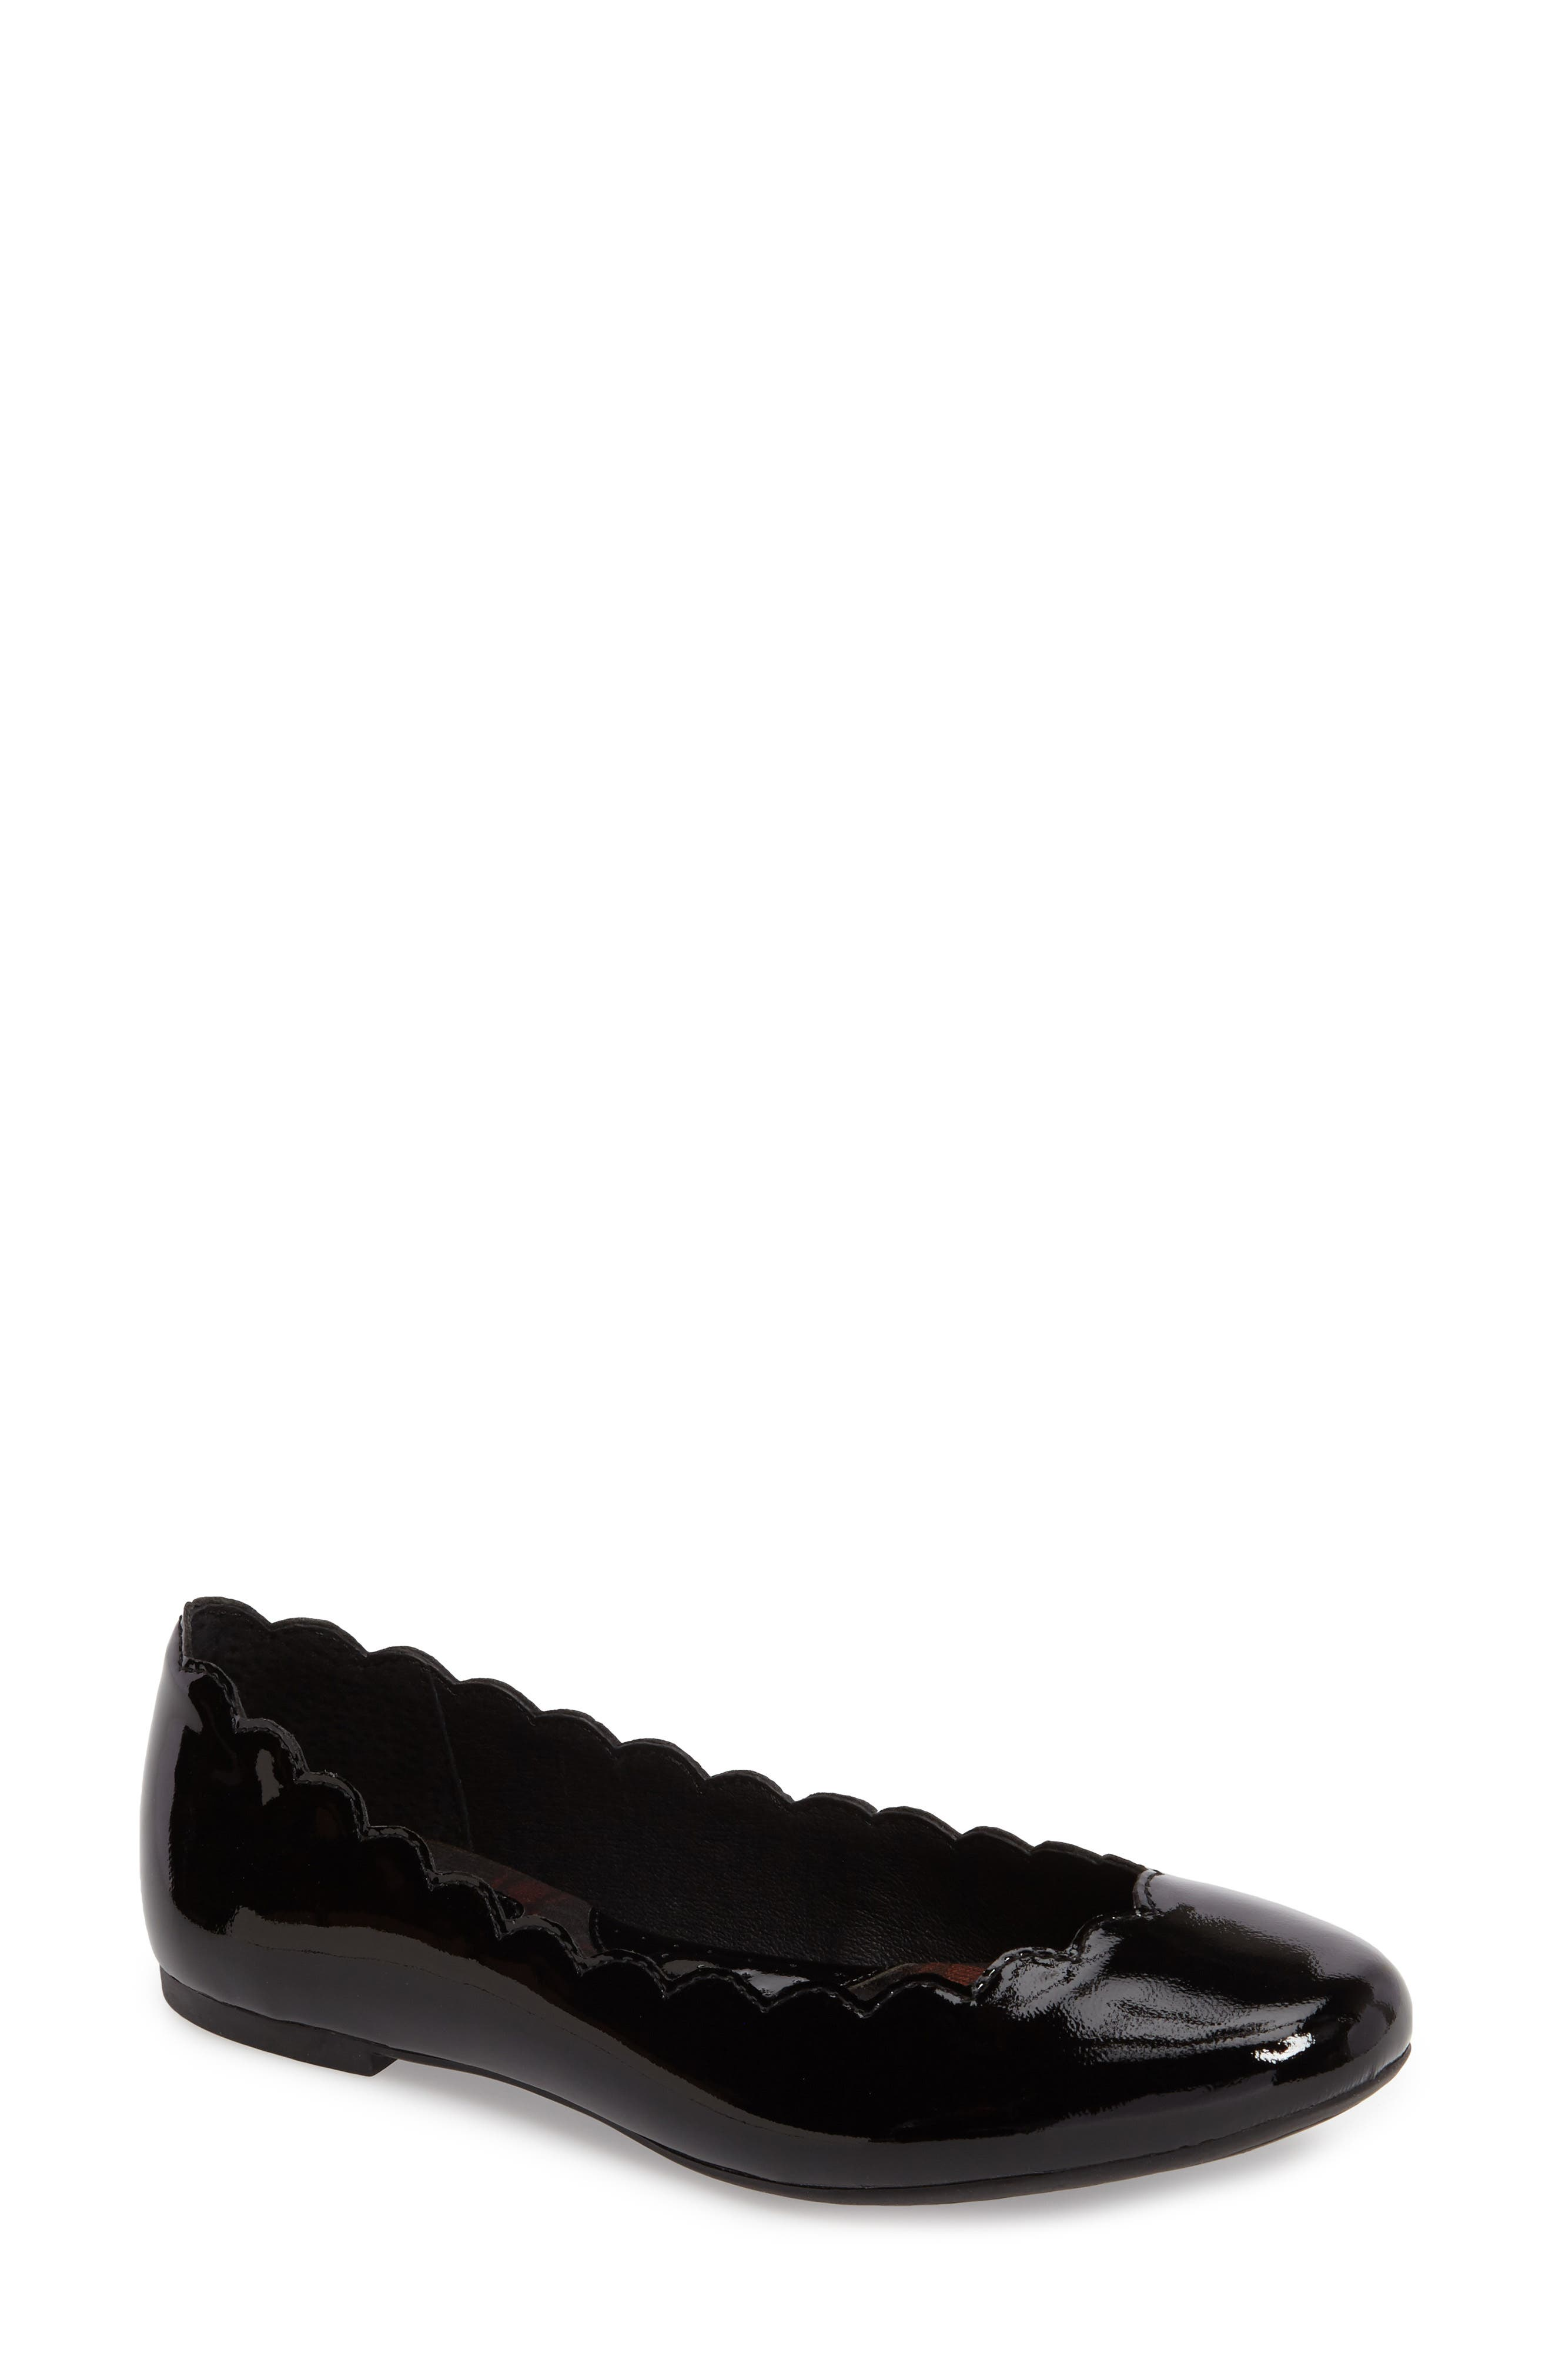 Børn Allie Scalloped Ballet Flat (Women)